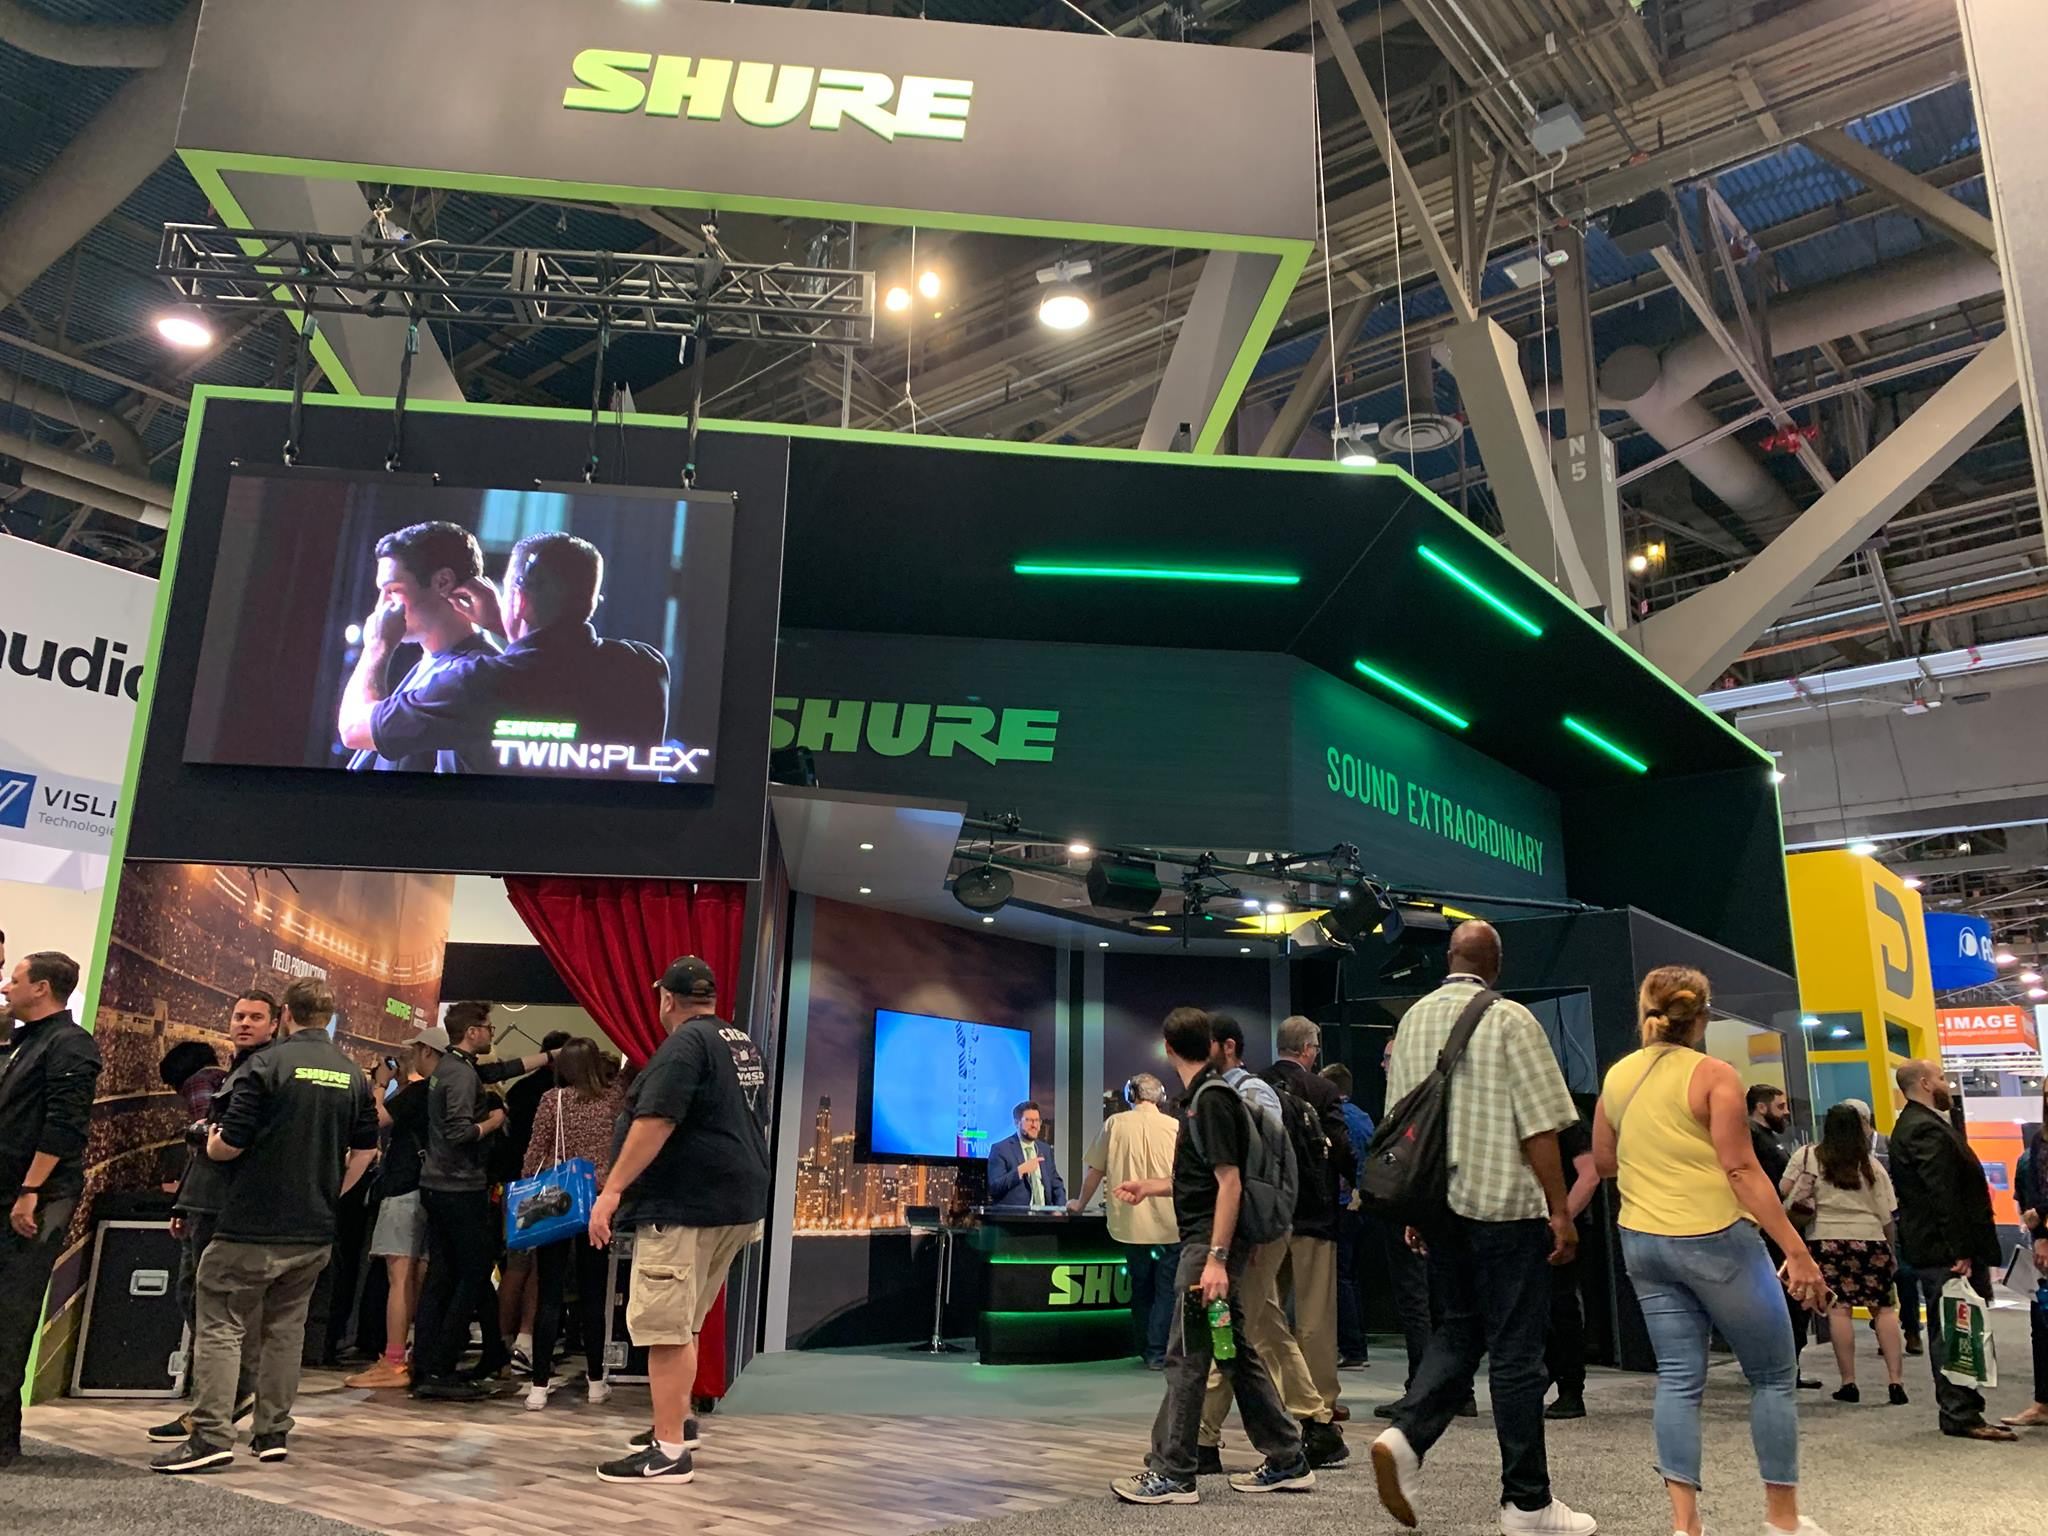 Shure Large Booth Exhibit at Trade Show